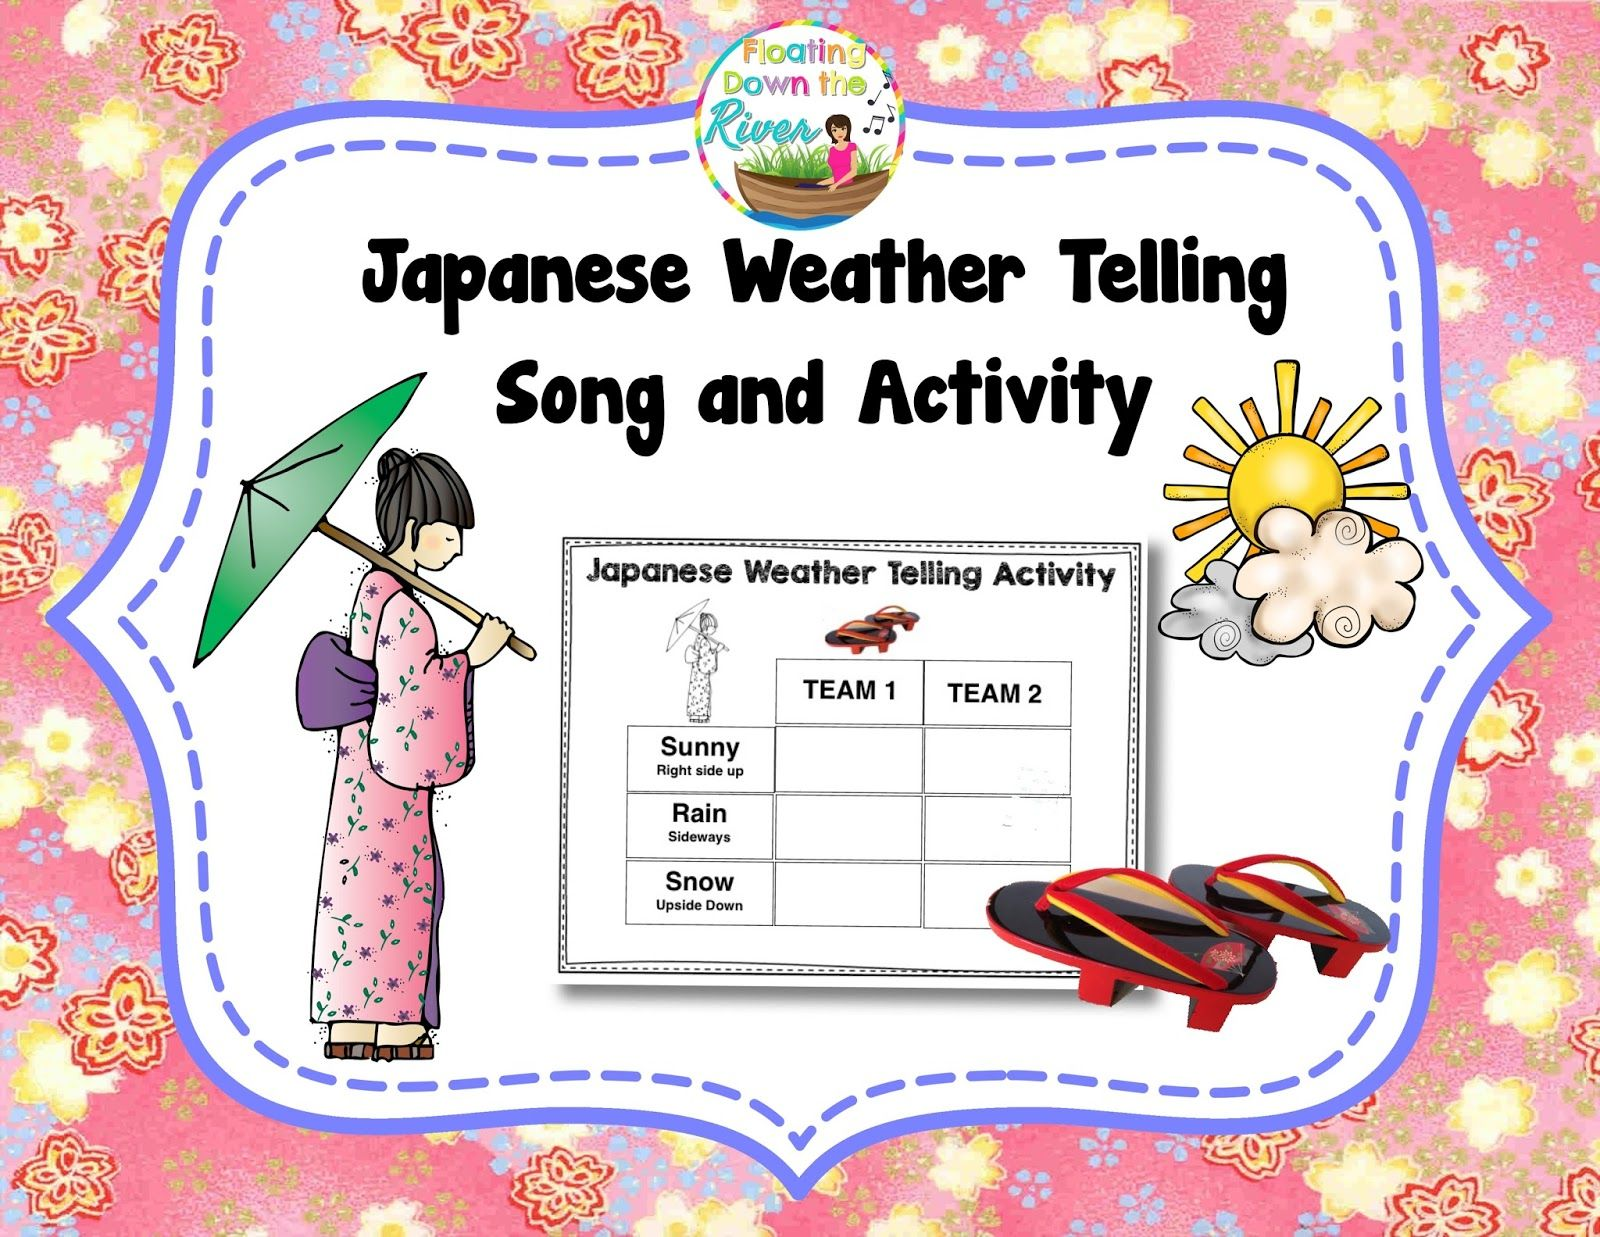 Floating Down The River Japanese Weather Telling Game